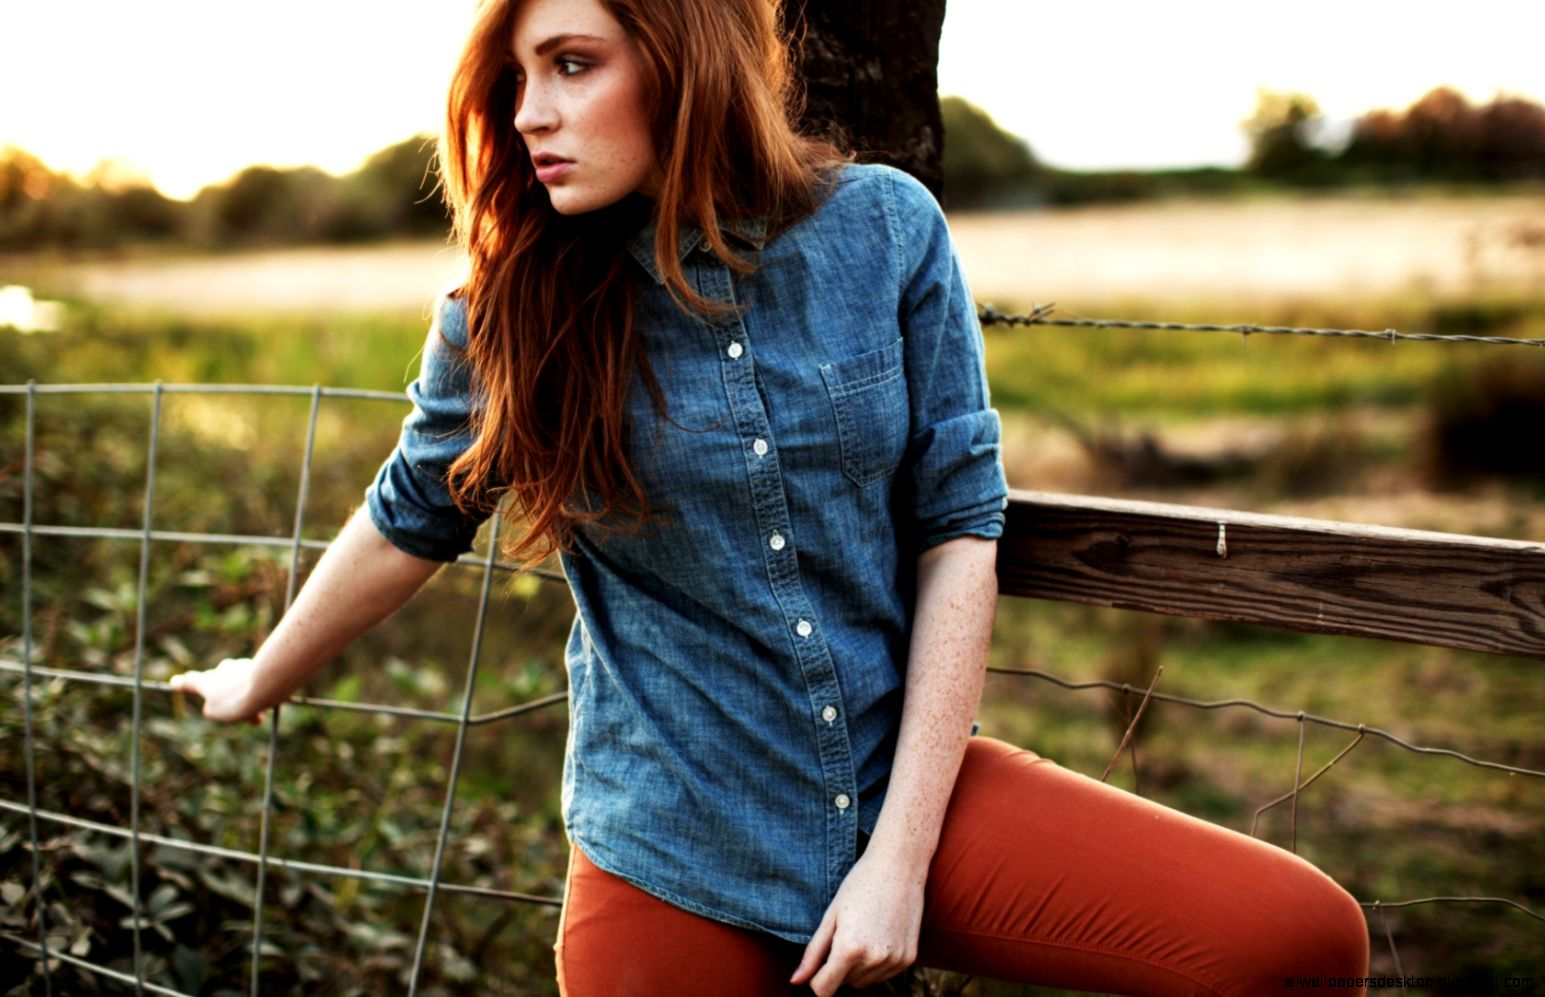 Lovely Redhead Girl Glasses Photography 6971513